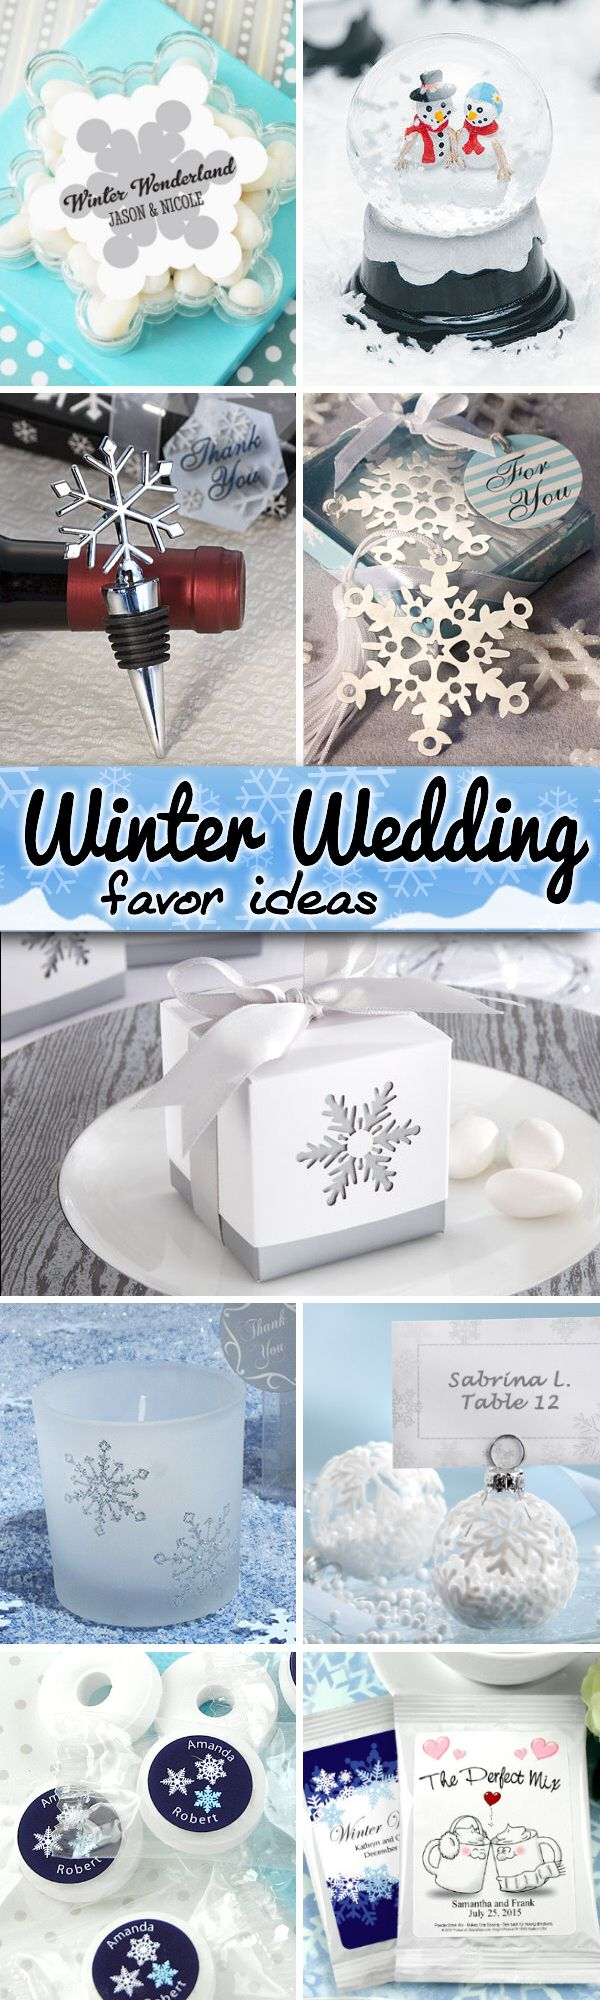 75 Fun and Festive Winter Wedding Favor Ideas like snowflake ...